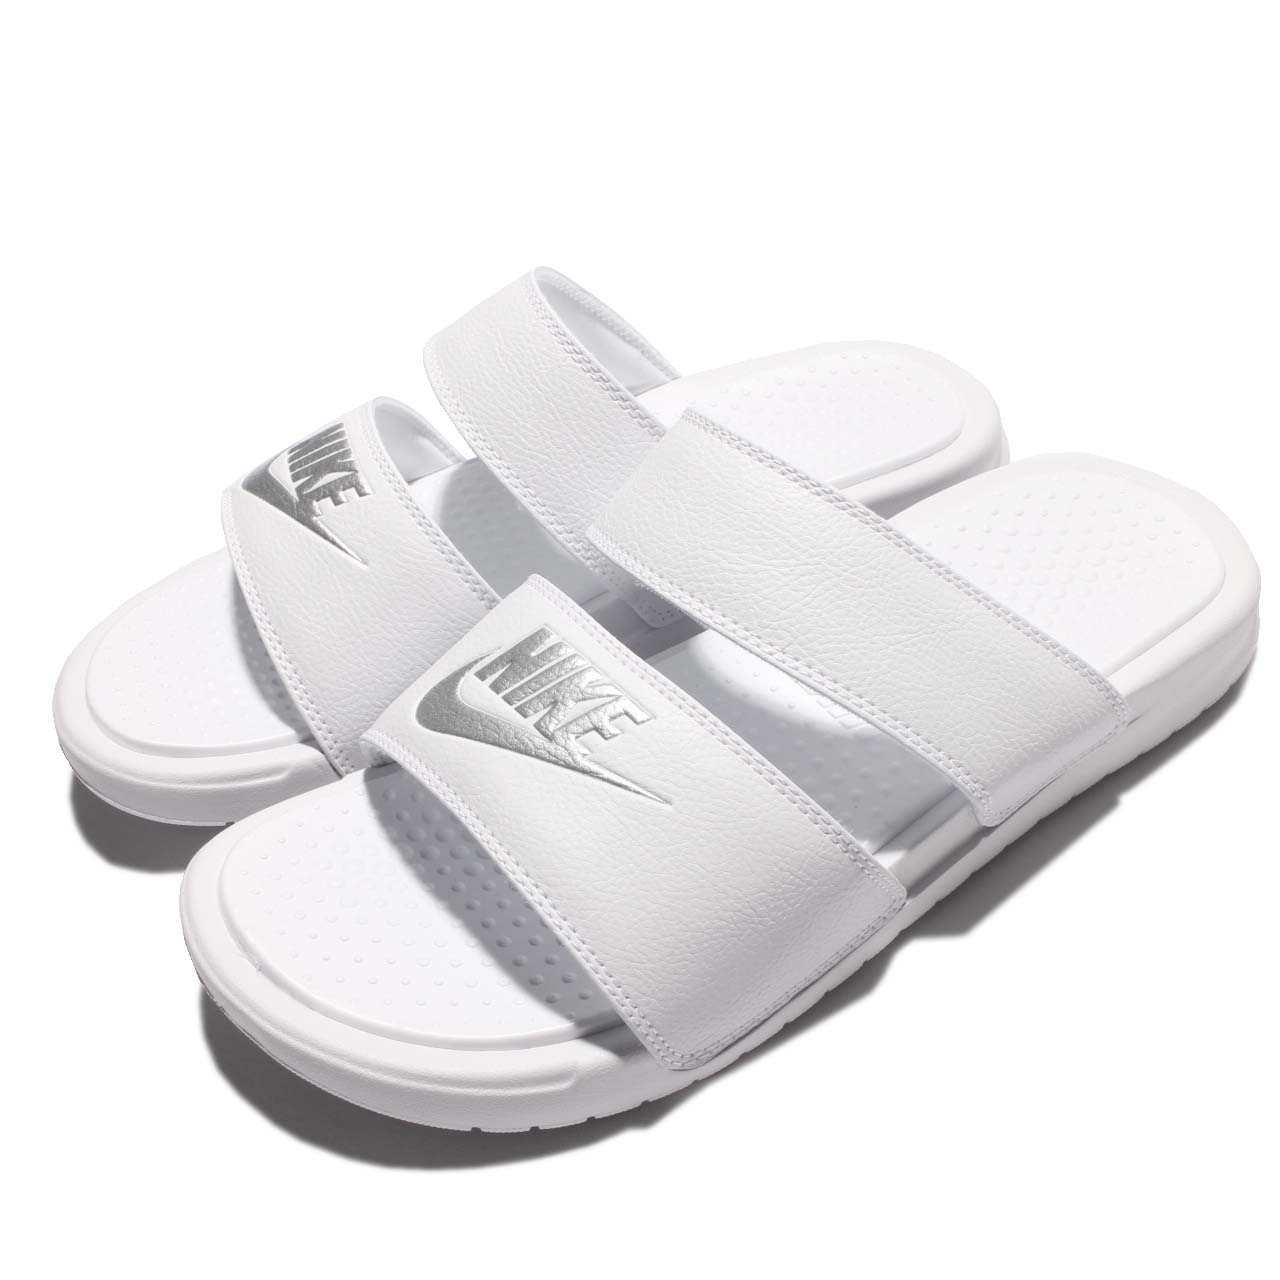 new style cd66d b26a5 Details about Wmns Nike Benassi Duo Ultra Slide Women Triple White Sandal  Slippers 819717-100